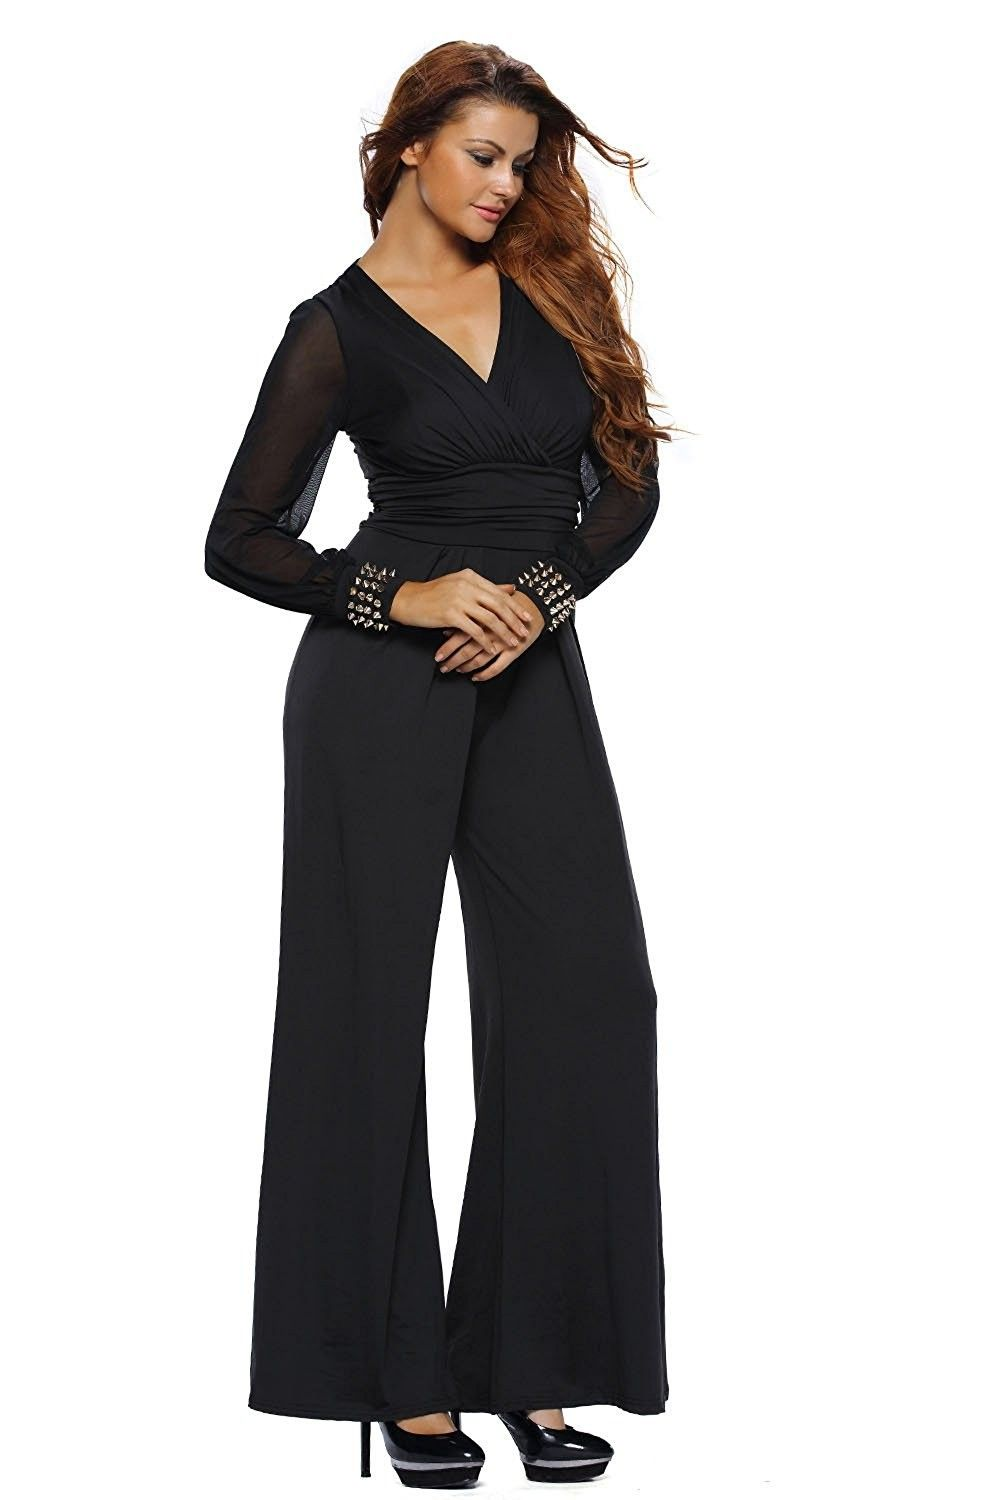 10600999fcbd1 Women s Embellished Cuffs Wide Leg Long Mesh Sleeves Party Cocktail ...